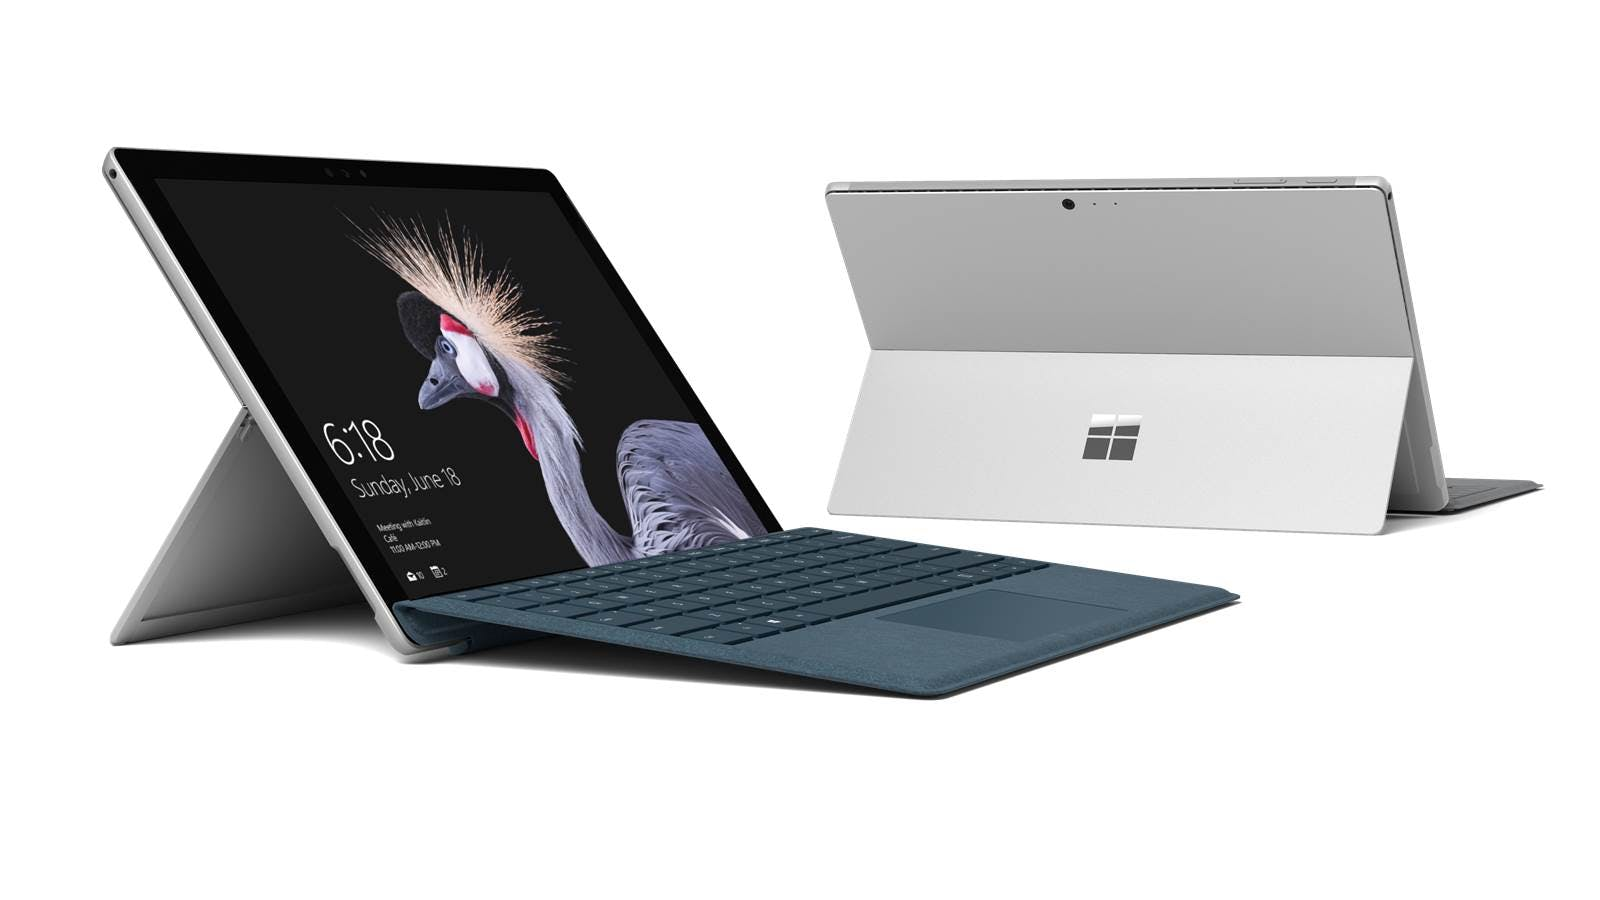 Microsoft Surface Laptop και Surface Pro: Δύο φορητά σημεία αναφοράς